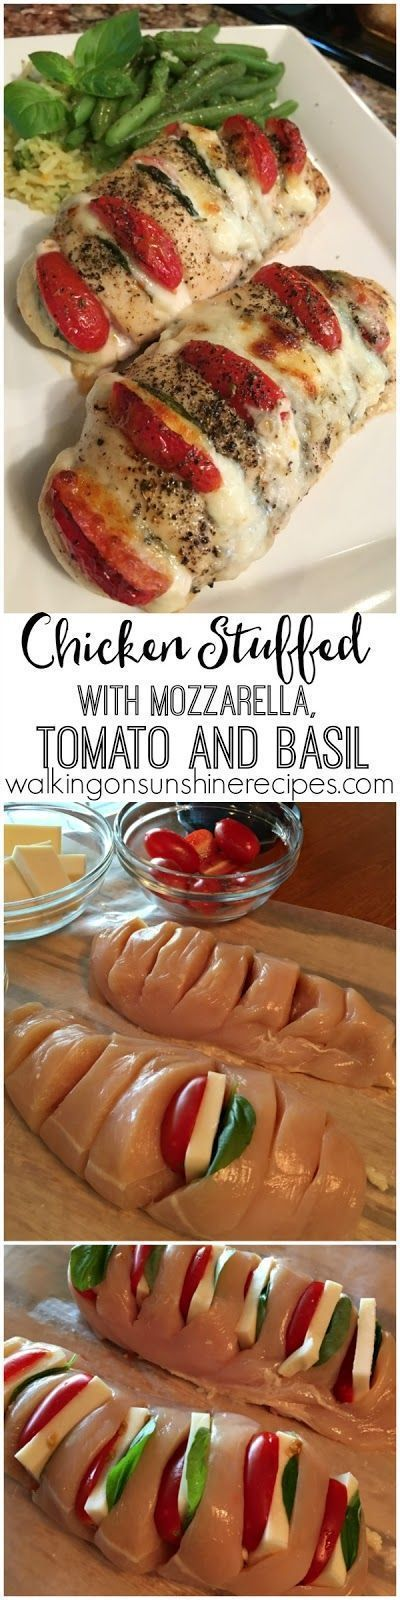 Hasselback chicken stuffed with mozzarella, tomato and basil is a new way to enjoy chicken for dinner tonight from Walking on Sunshine Recipes.